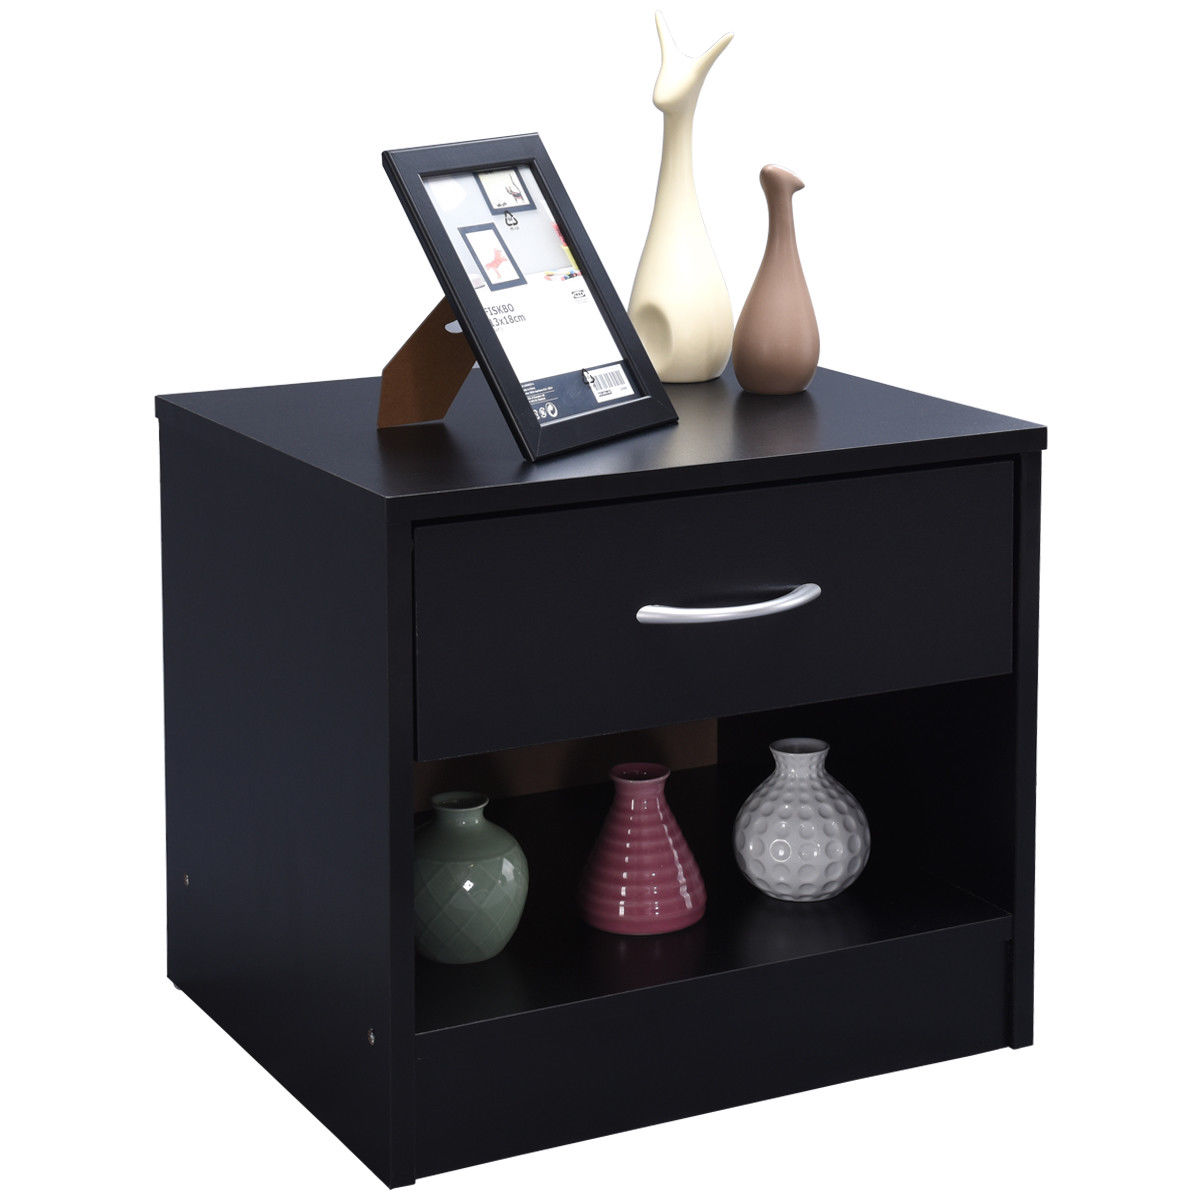 Costway Nightstand End Table Storage Display Bedroom Furniture Drawer Shelf Black